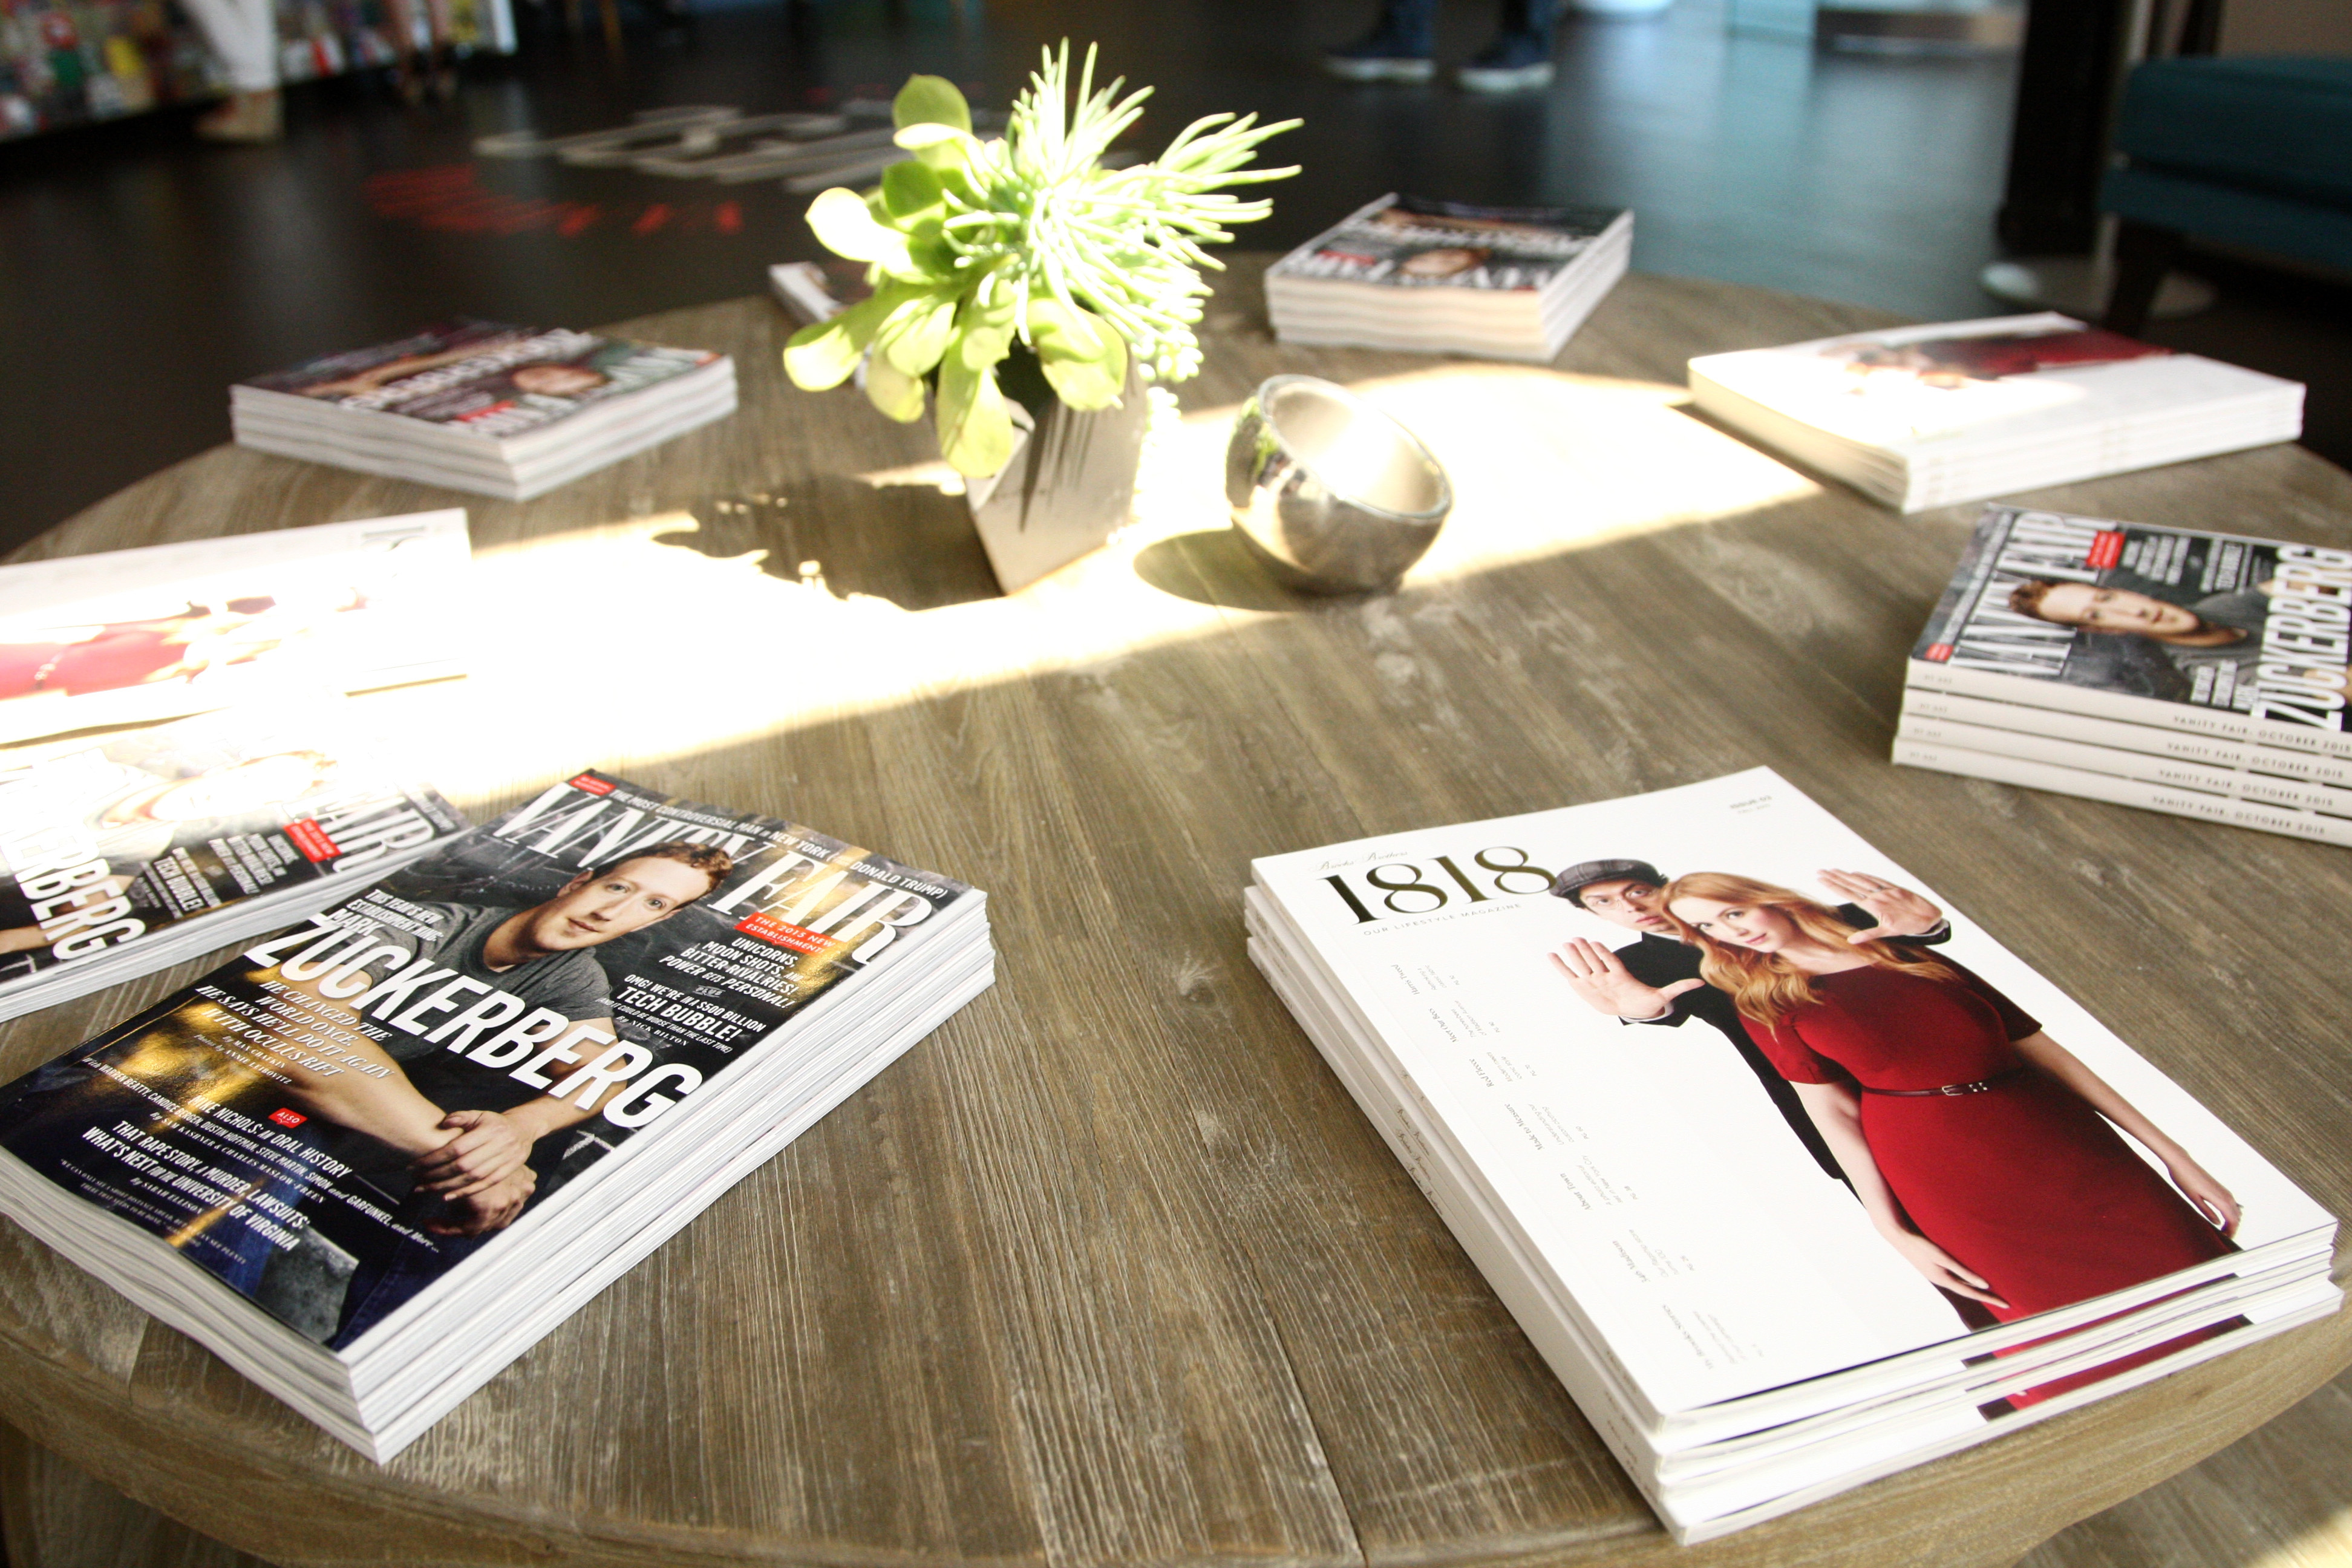 9 Fashionable Coffee Table Books That Should Be In Every Style Living Room